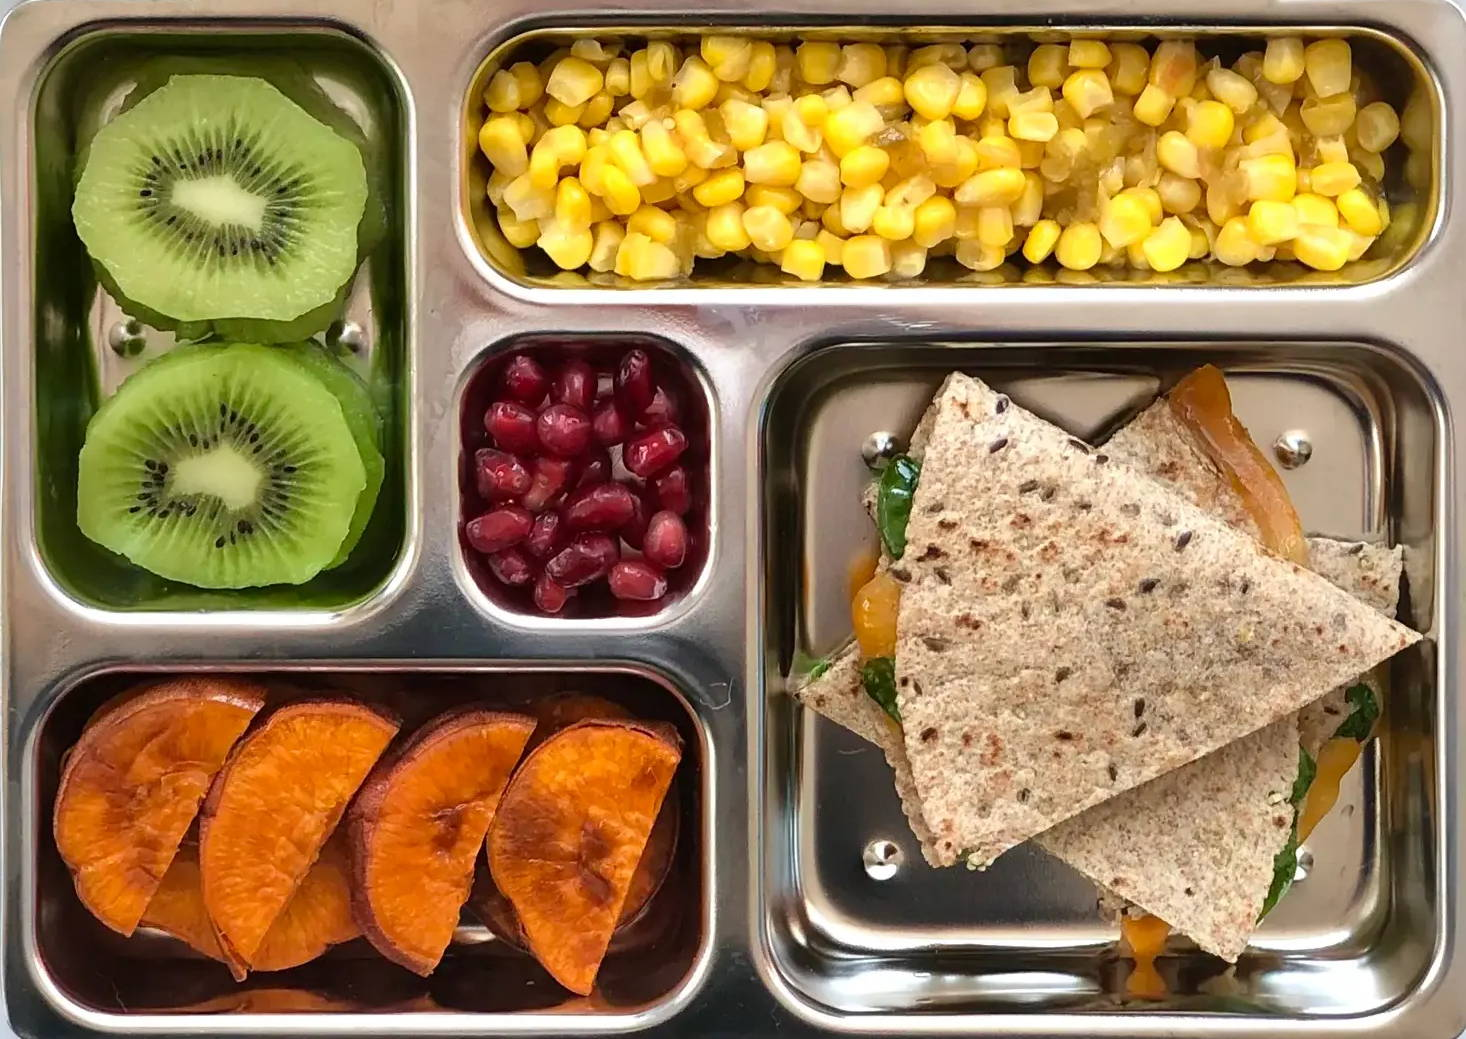 Sneak peek of a kid's quick and healthy school lunch containing  Spinach Cheese Quesadilla, Zippy Corn, Roasted Sweet Potato Rounds, Sliced Kiwi, and Pomegranate Seeds.